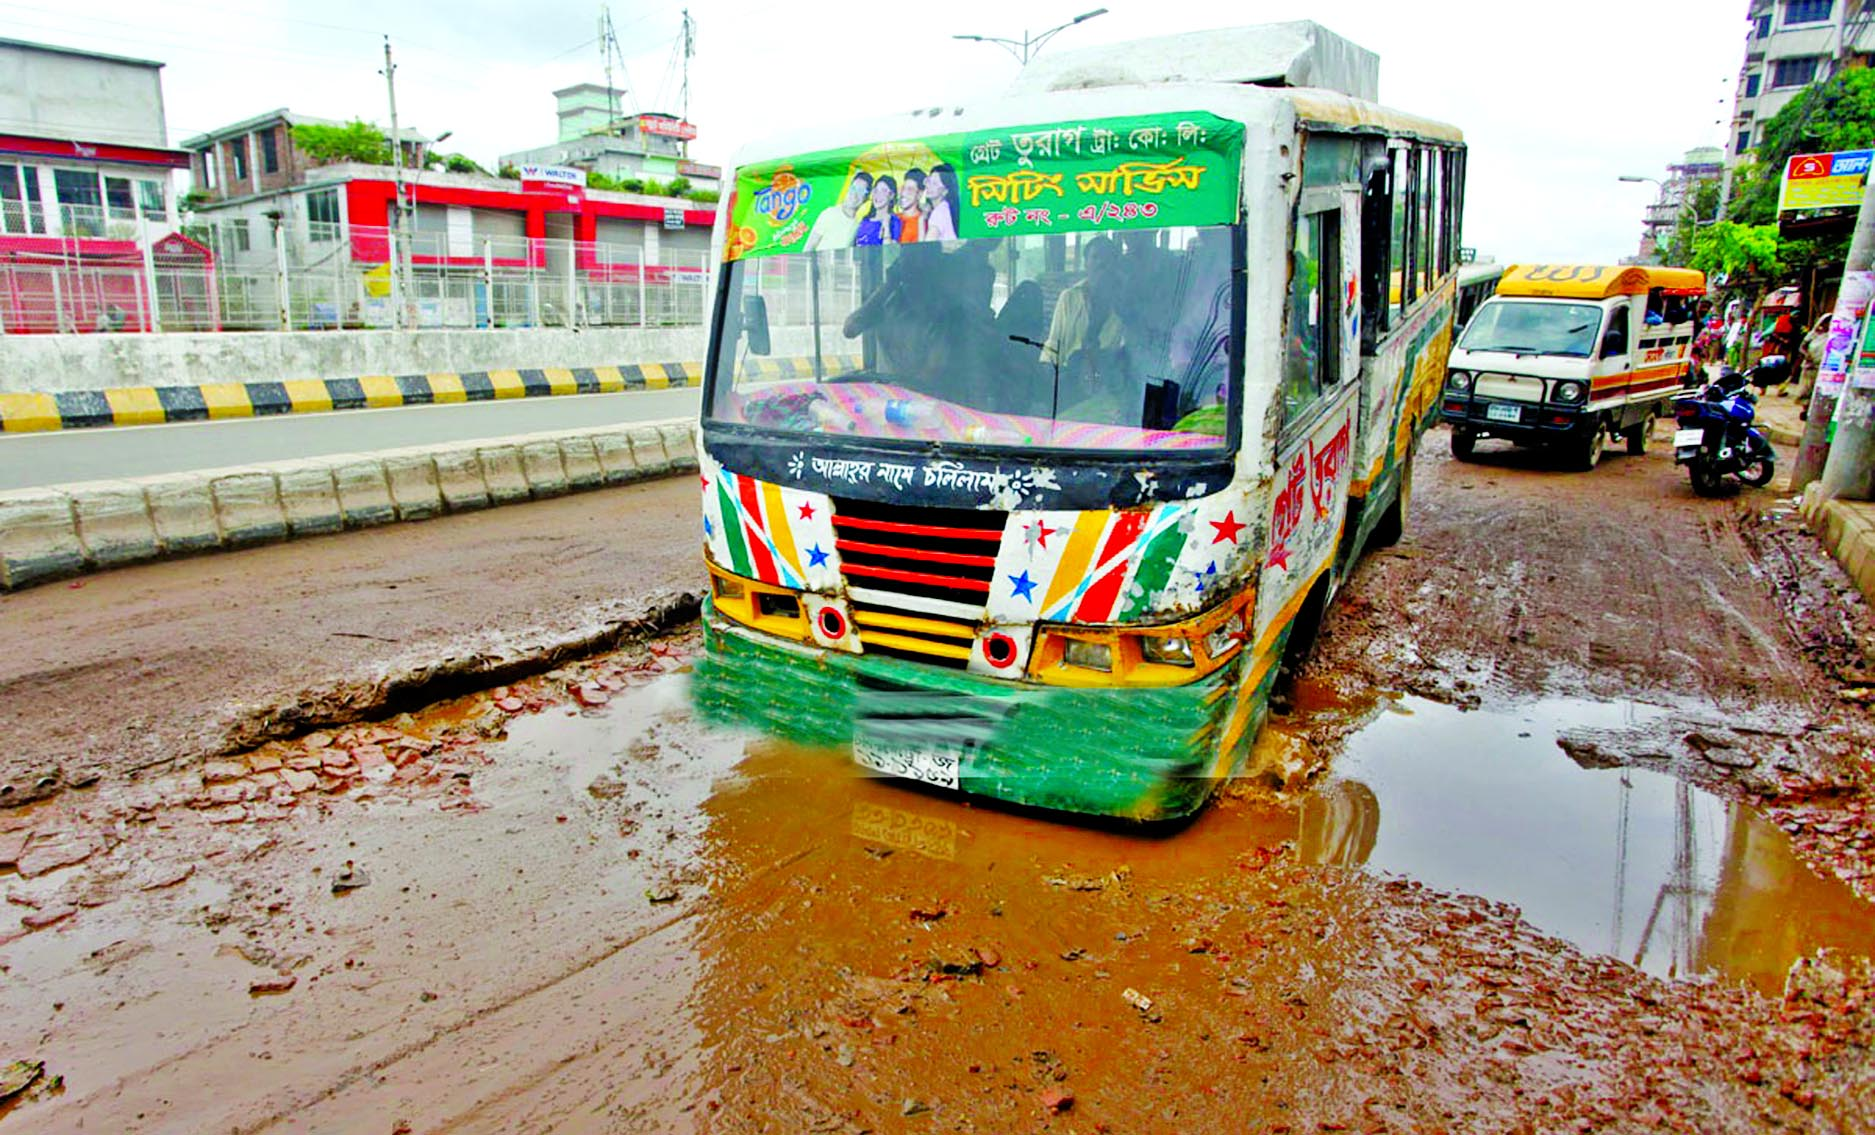 Home-bound people may face difficulties as many roads and highways still in dilapidated condition across the country as potholes being developed creating immense sufferings to commuters. This photo was taken from city